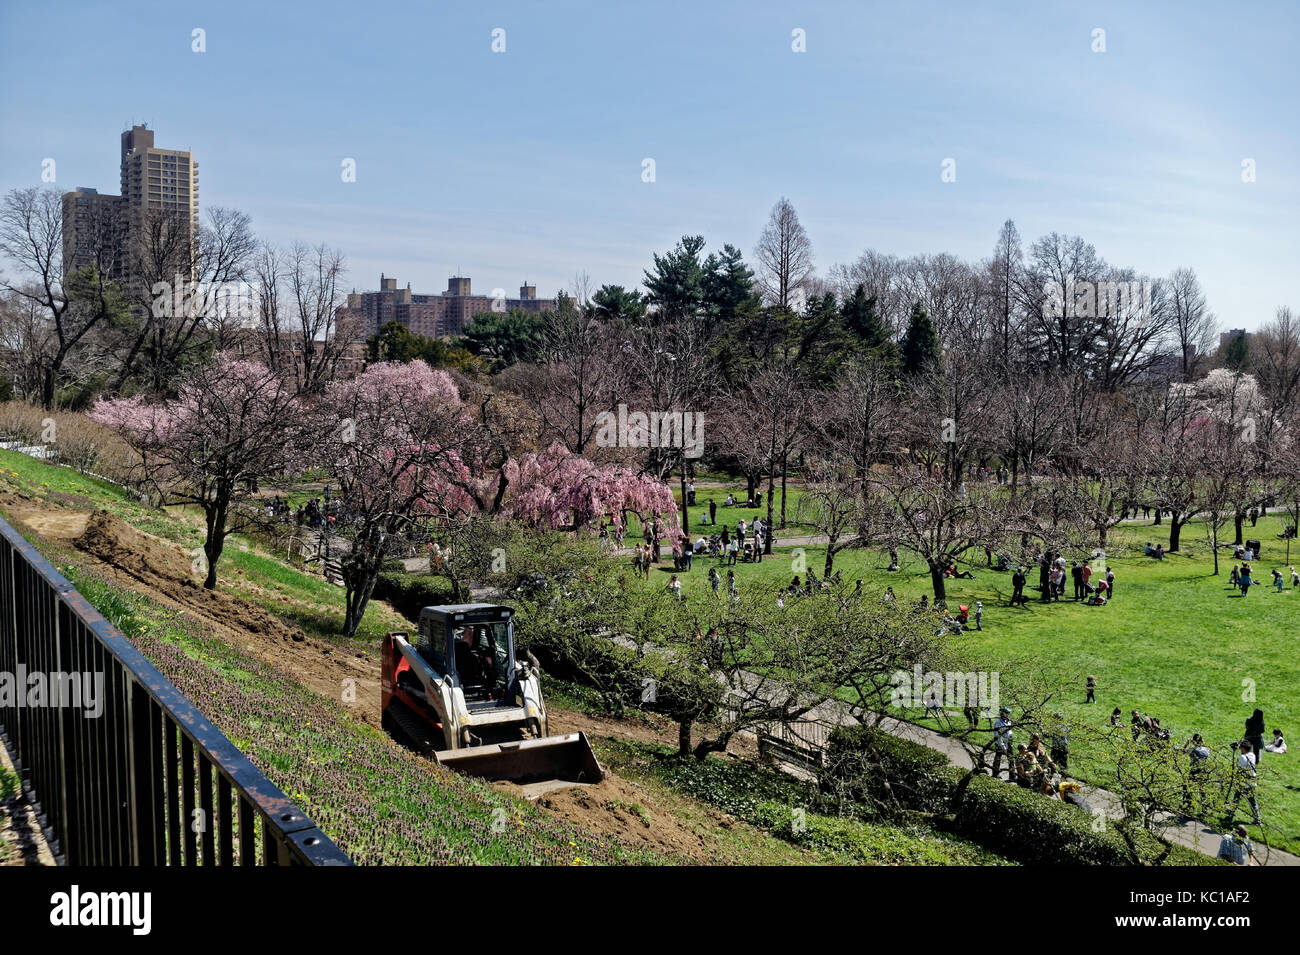 Small tractor working on an area of the Brooklyn Botanic Gardens while visitors enjoy the Spring blooms. - Stock Image